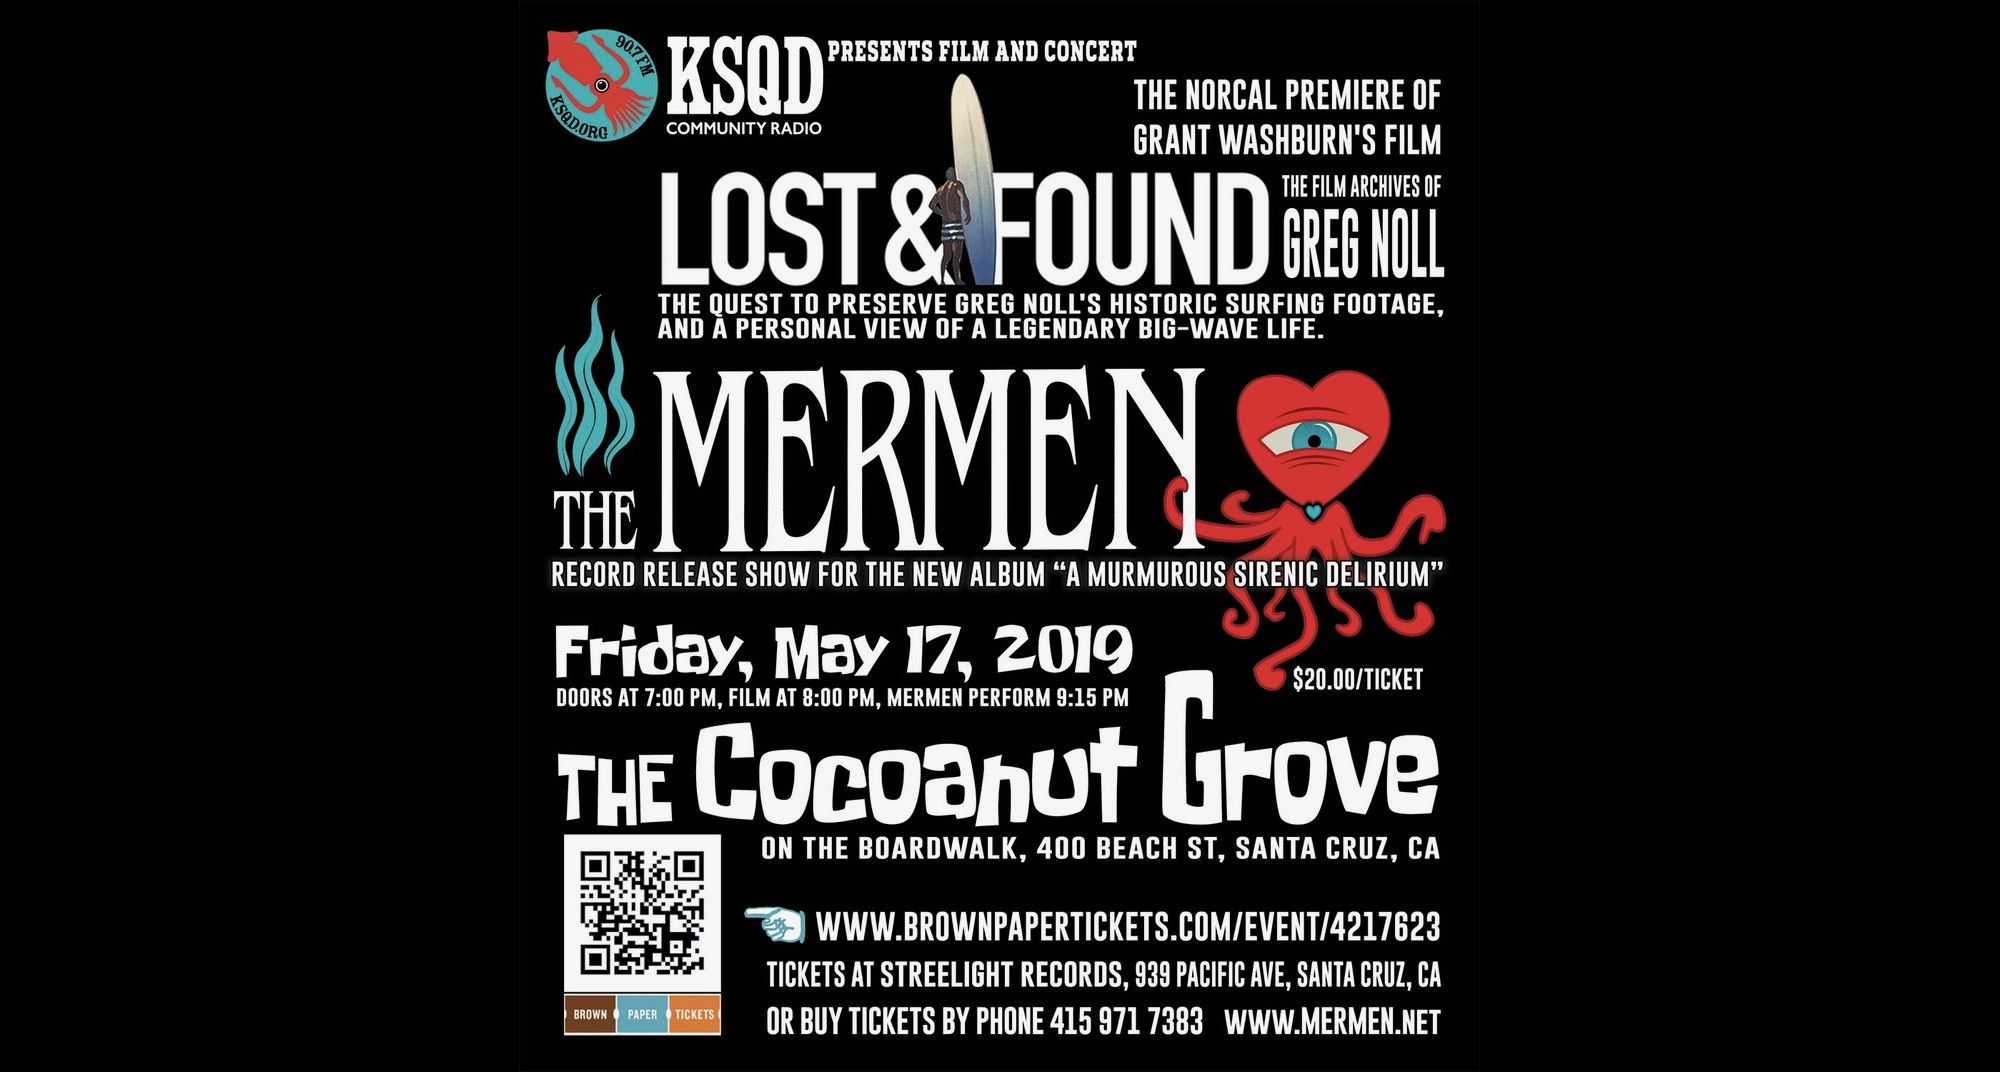 KSQD Presents The Mermen Album Release Party